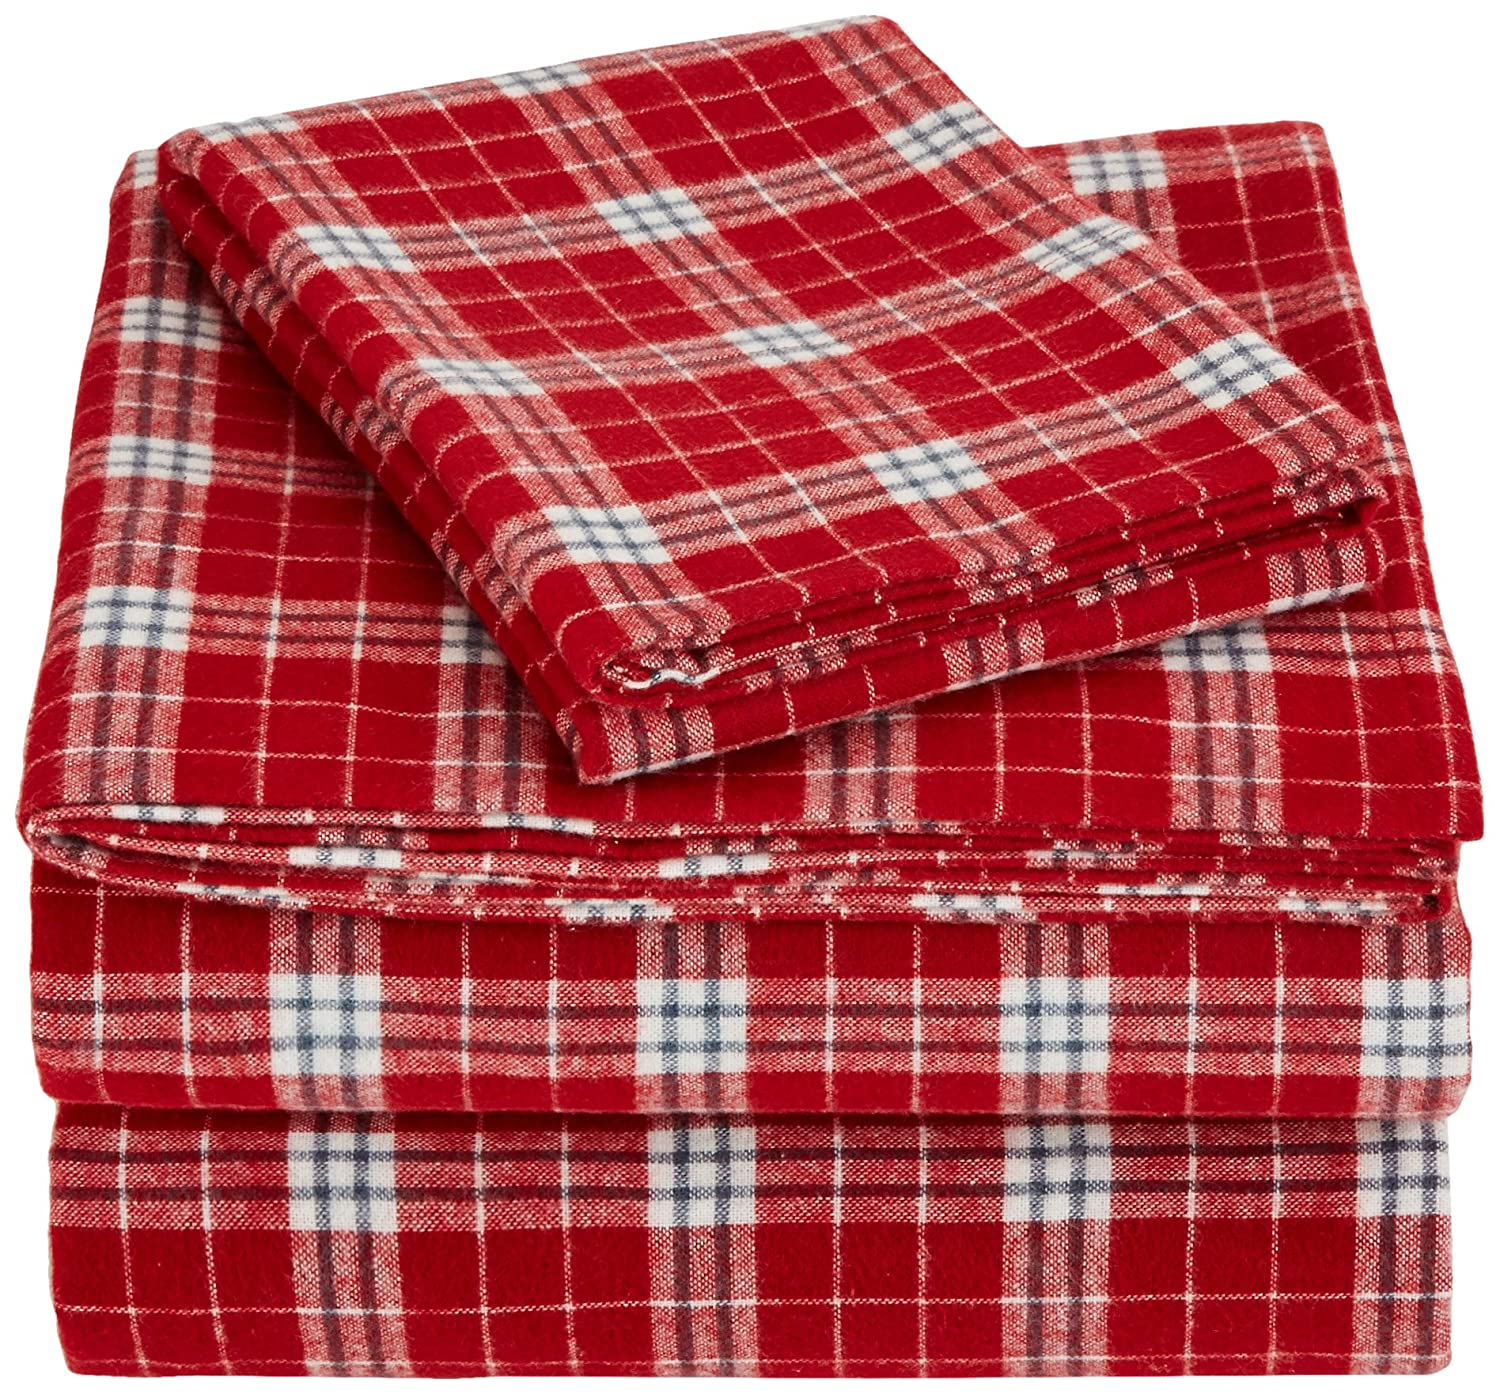 The Best Flannel Sheets 4